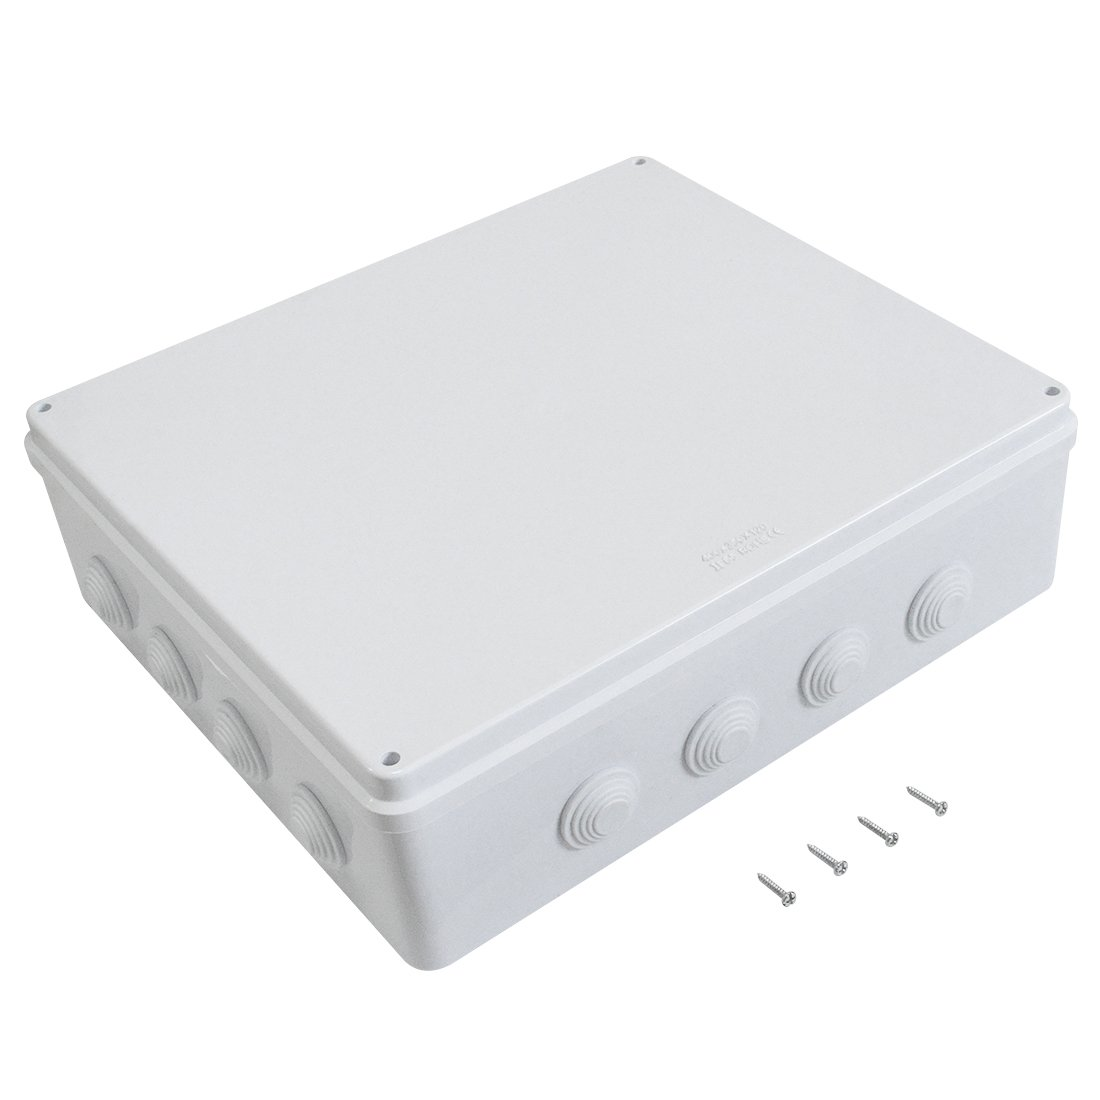 LeMotech ABS Plastic Dustproof Waterproof IP65 Junction Box Universal Electrical Project Enclosure White 15.7'' x 13.8'' x 4.7''(400mmx350mmx120mm)